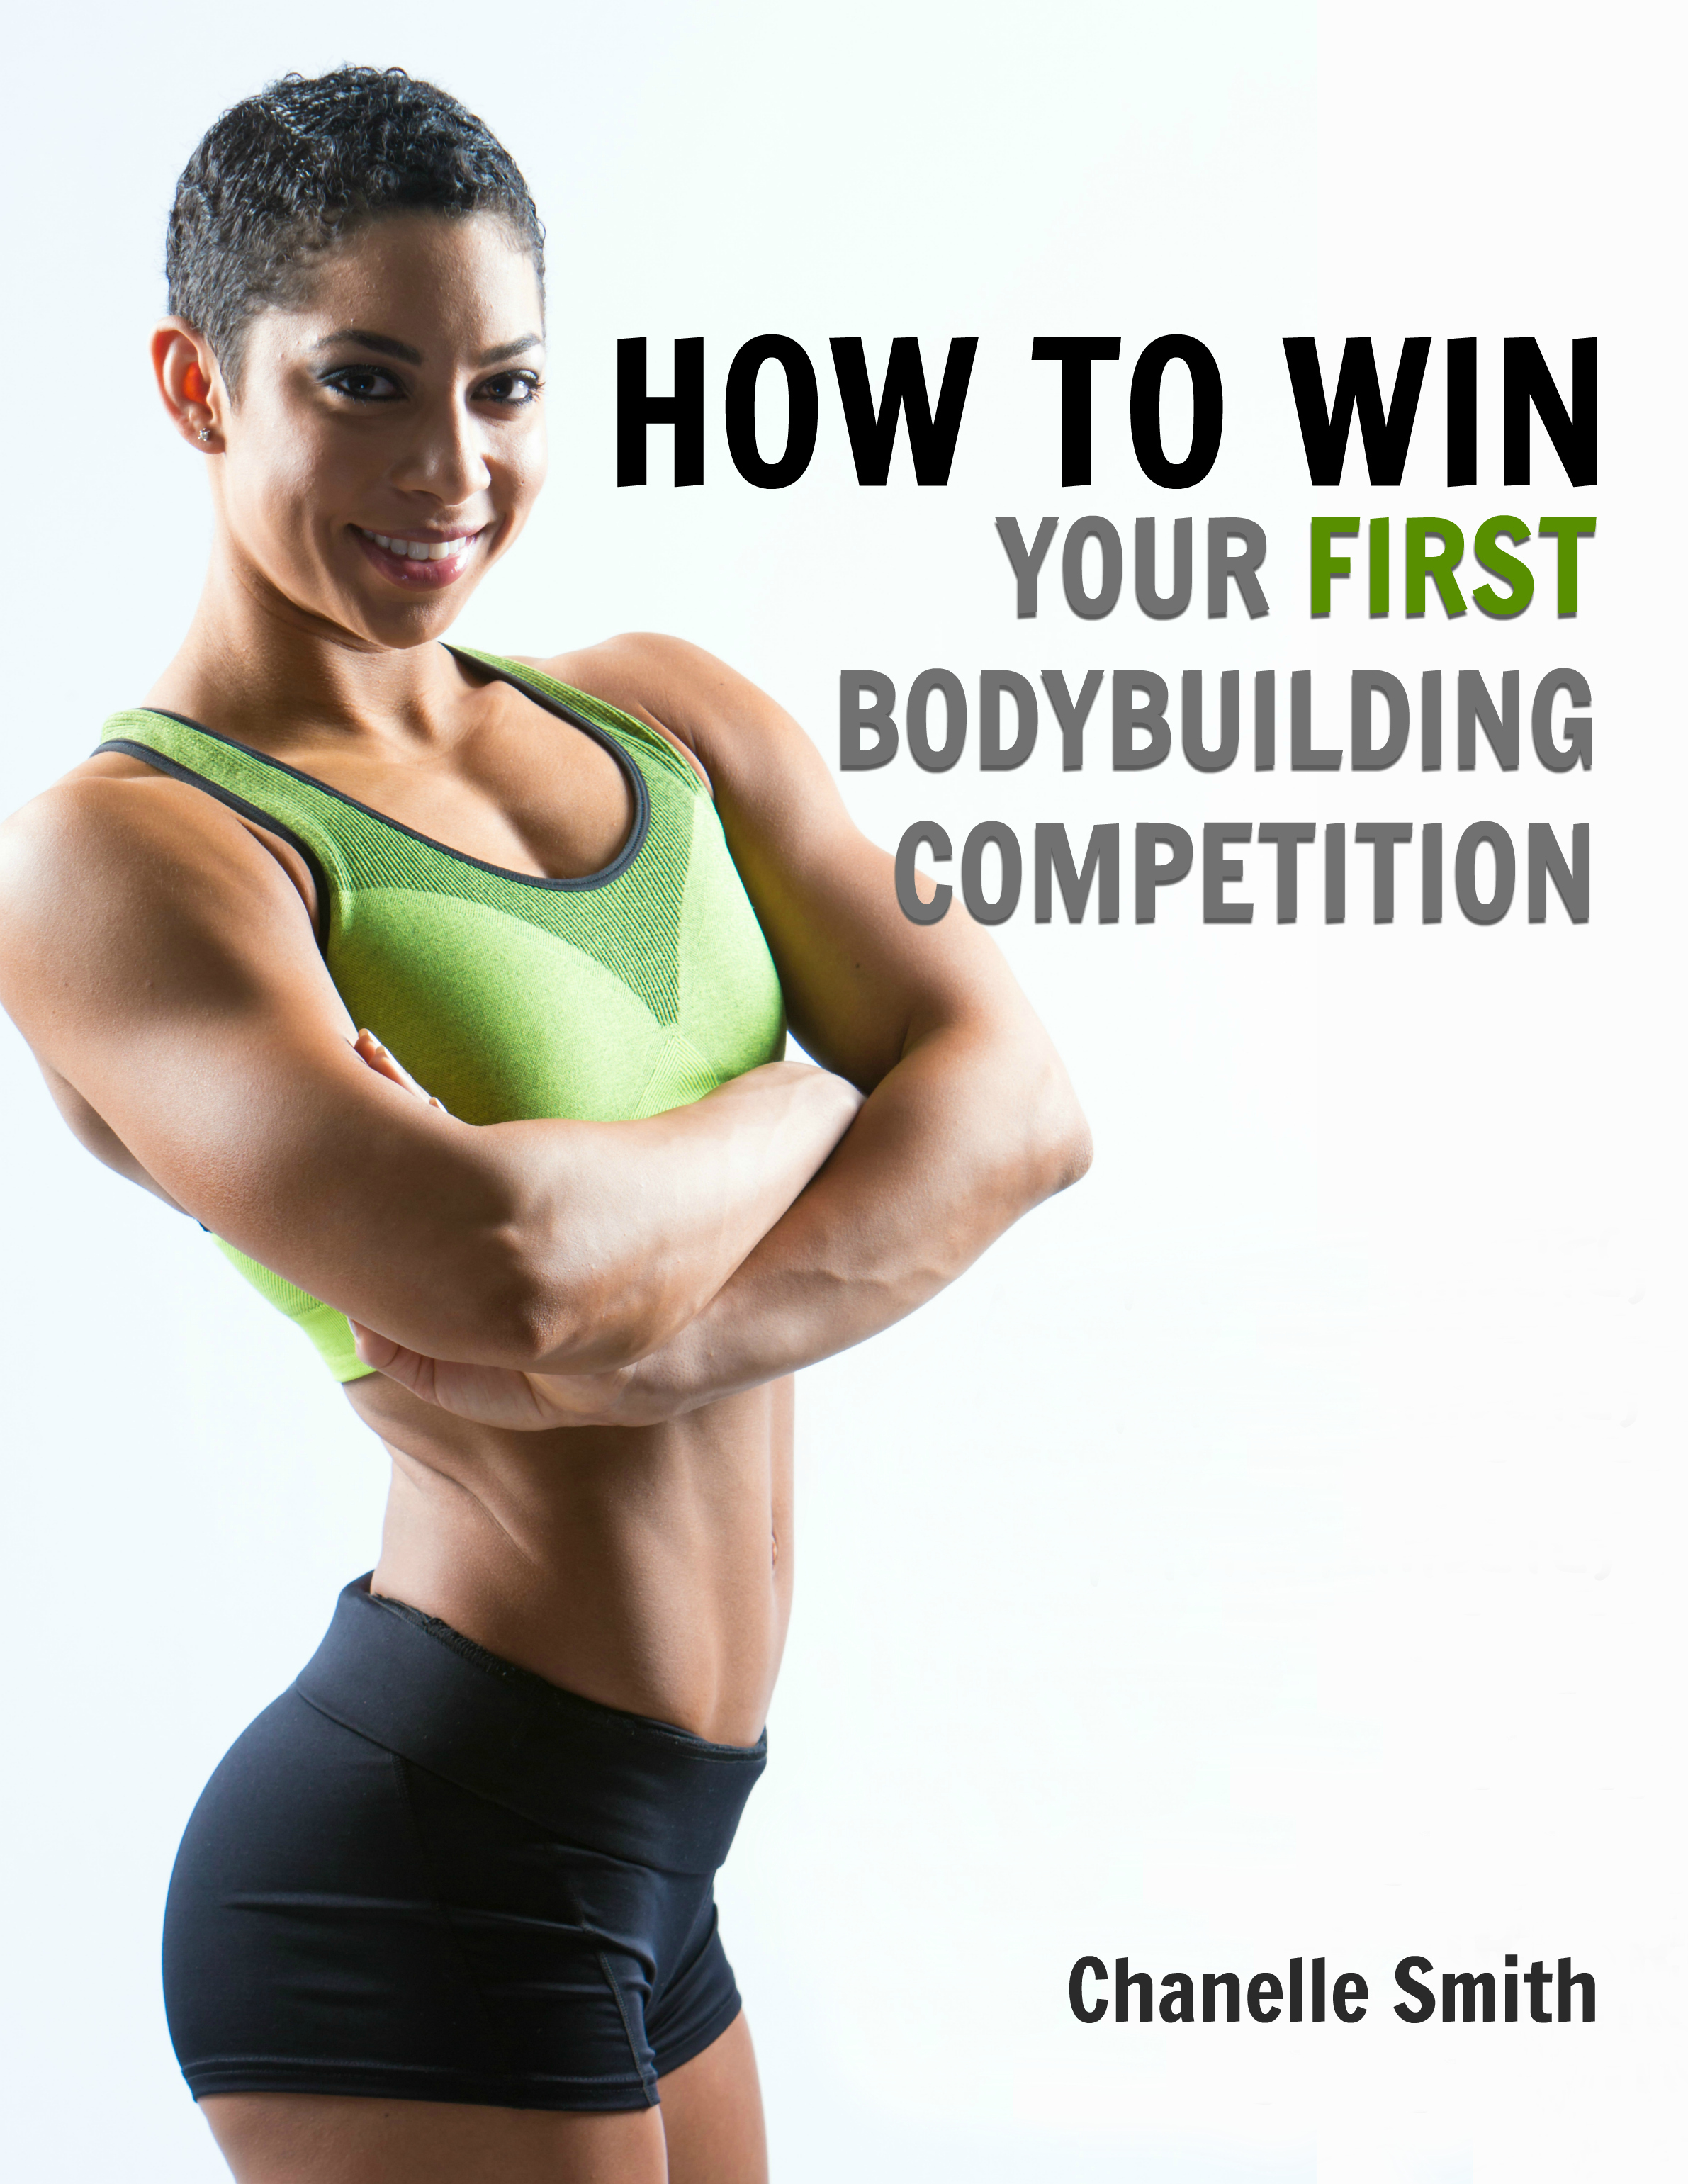 How to Win Your First Bodybuilding Competion ebook Bikini Figure Chanelle Smith